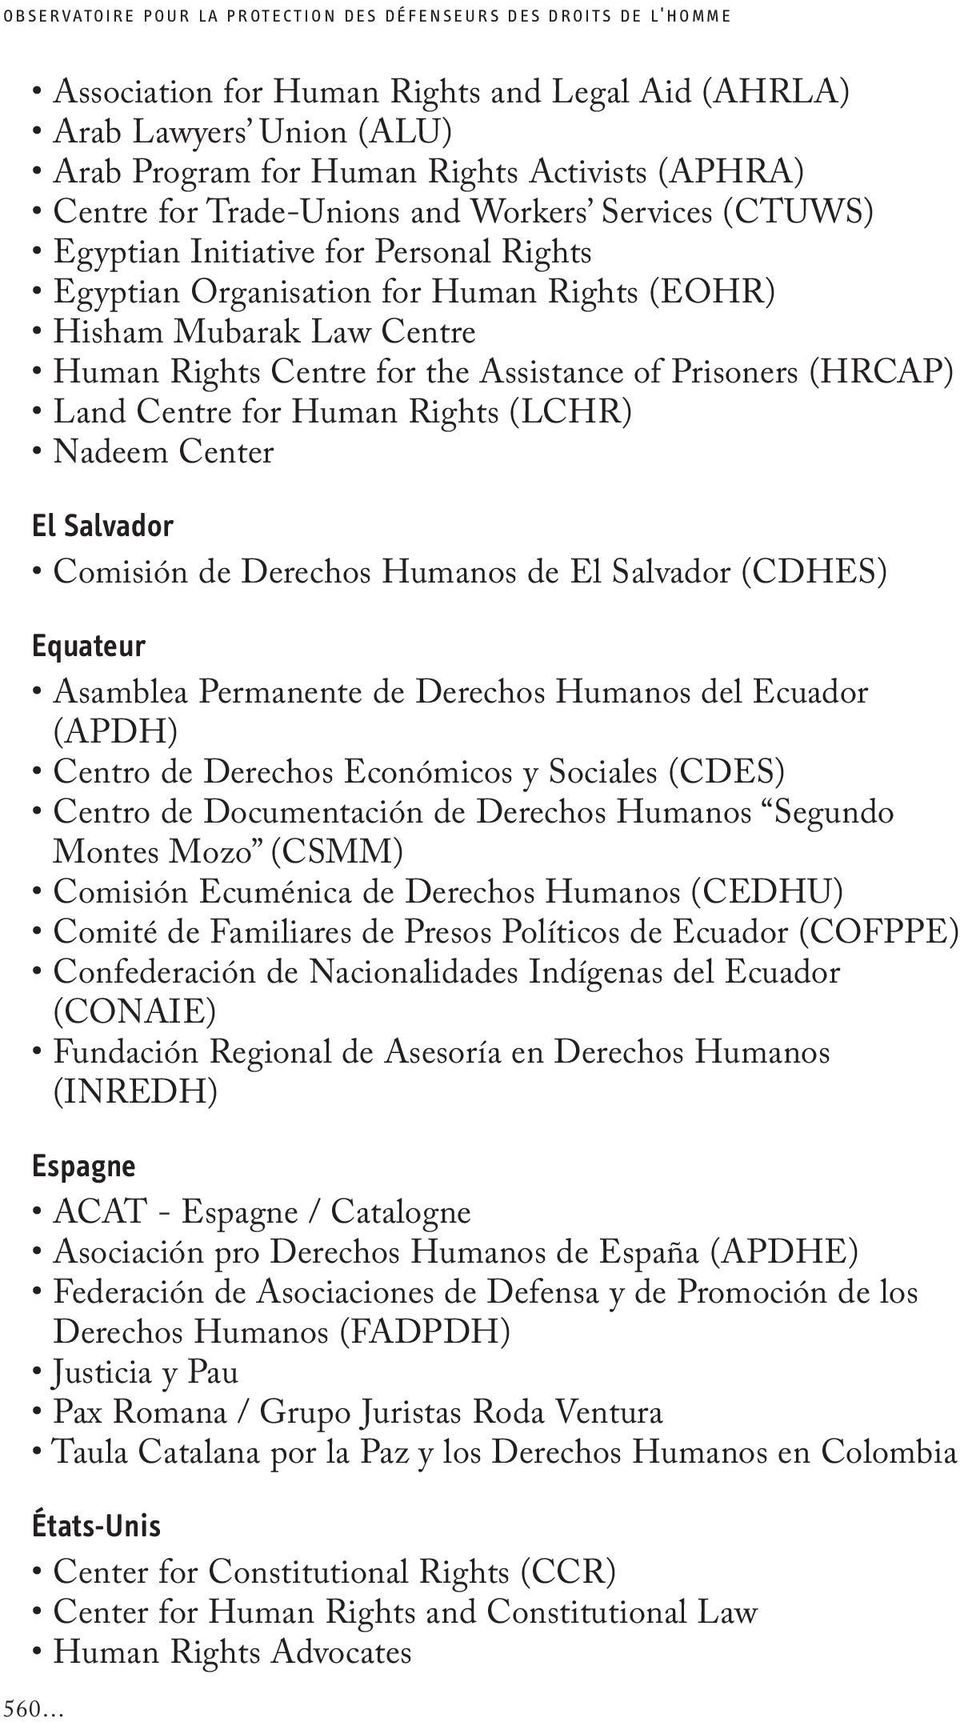 Assistance of Prisoners (HRCAP) Land Centre for Human Rights (LCHR) Nadeem Center El Salvador Comisión de Derechos Humanos de El Salvador (CDHES) Equateur Asamblea Permanente de Derechos Humanos del